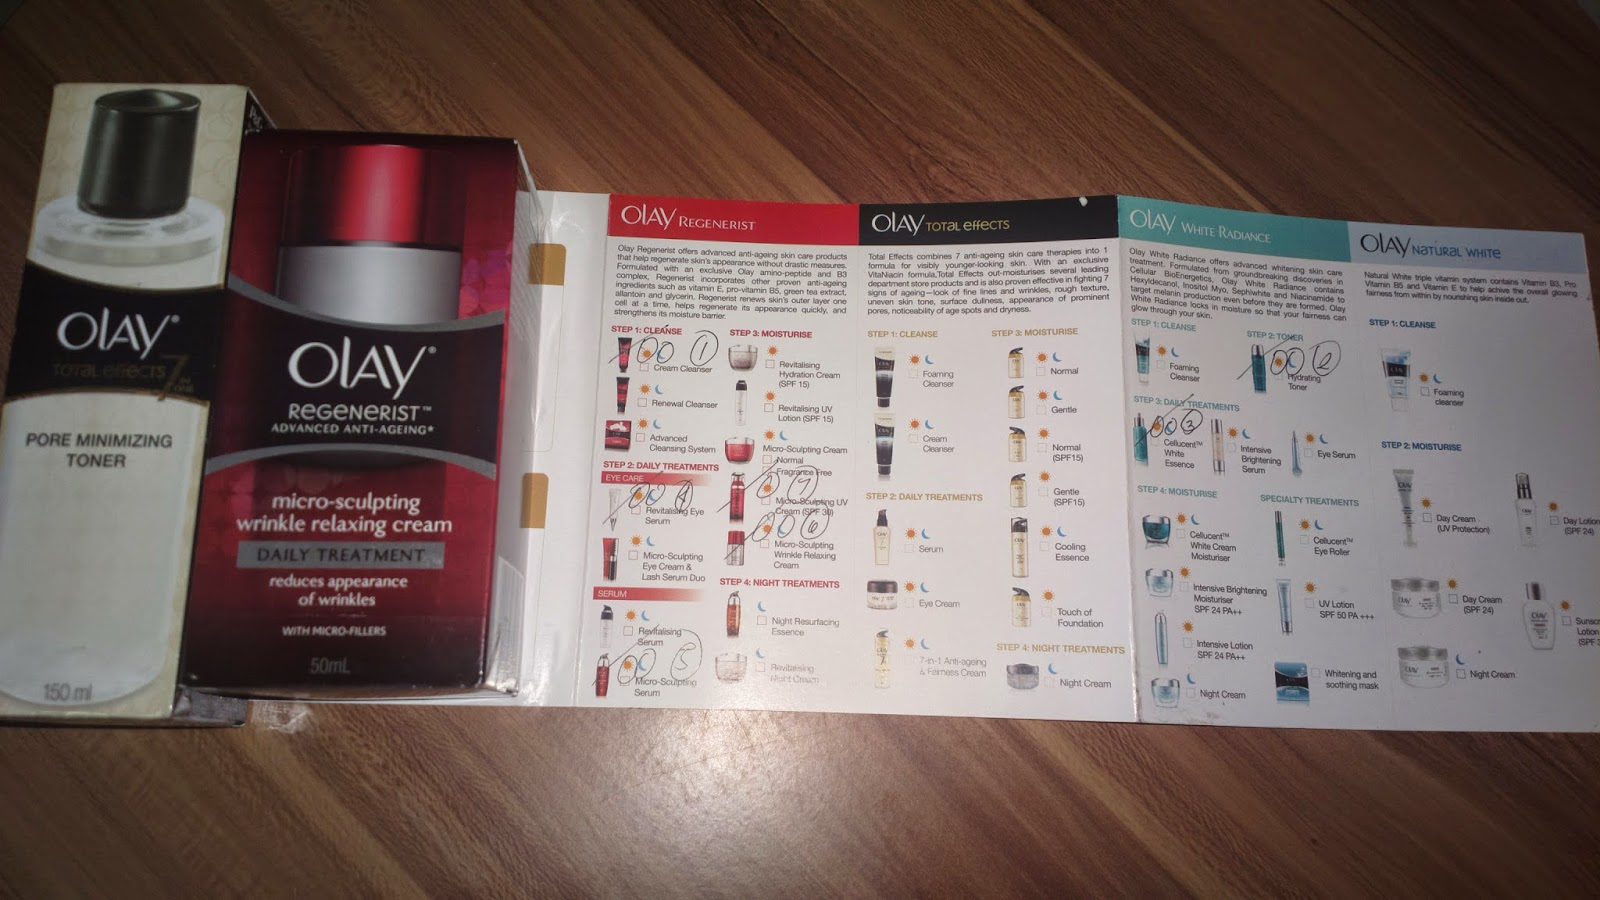 Olay for a Skincare Product Recommendation